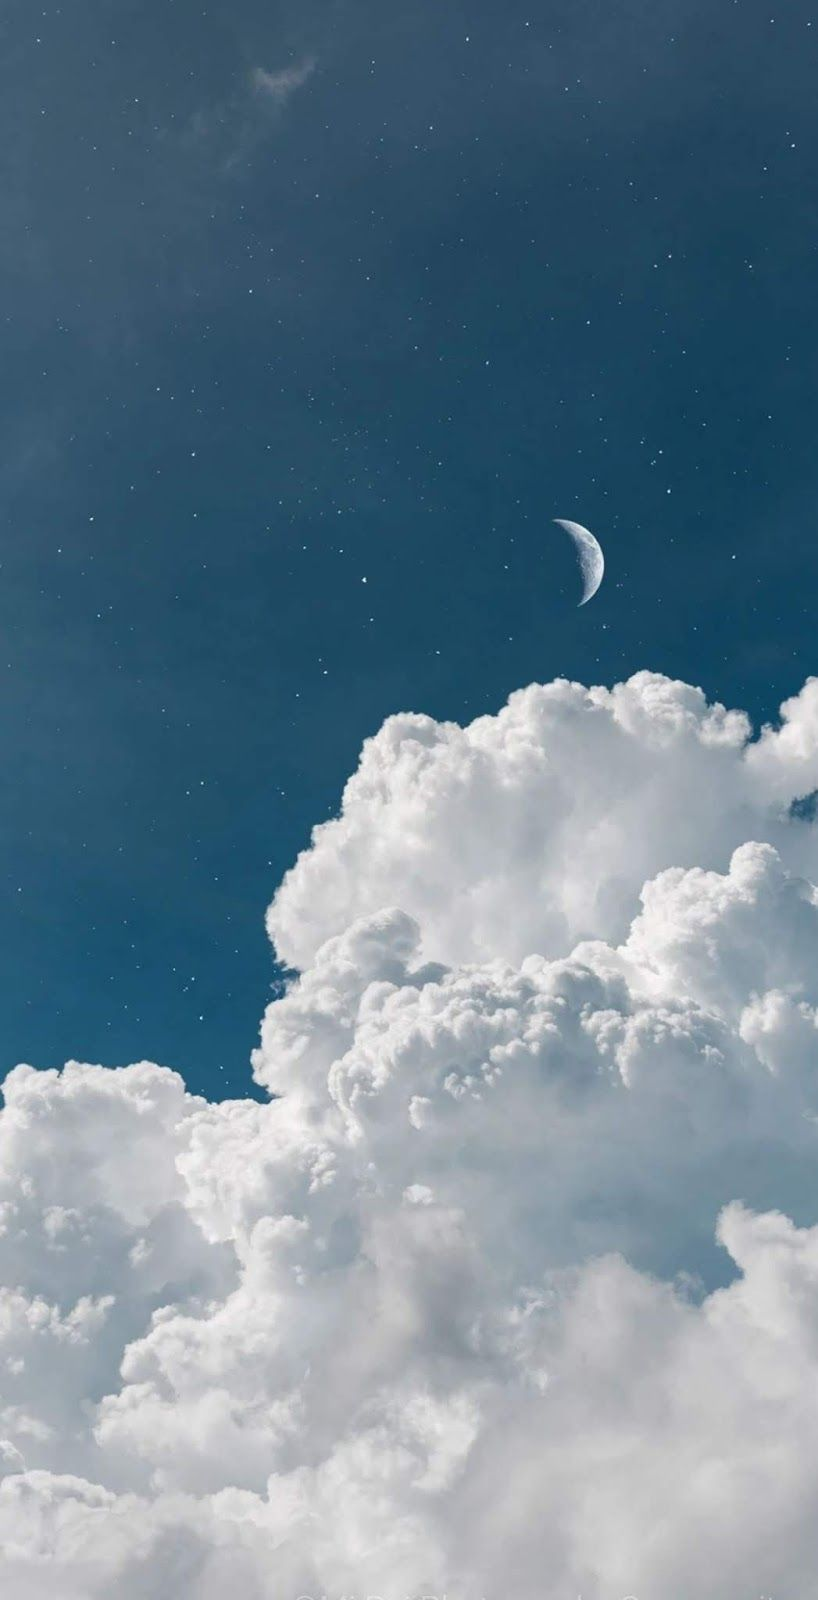 Crescent Moon In Cloudy Sky In 2020